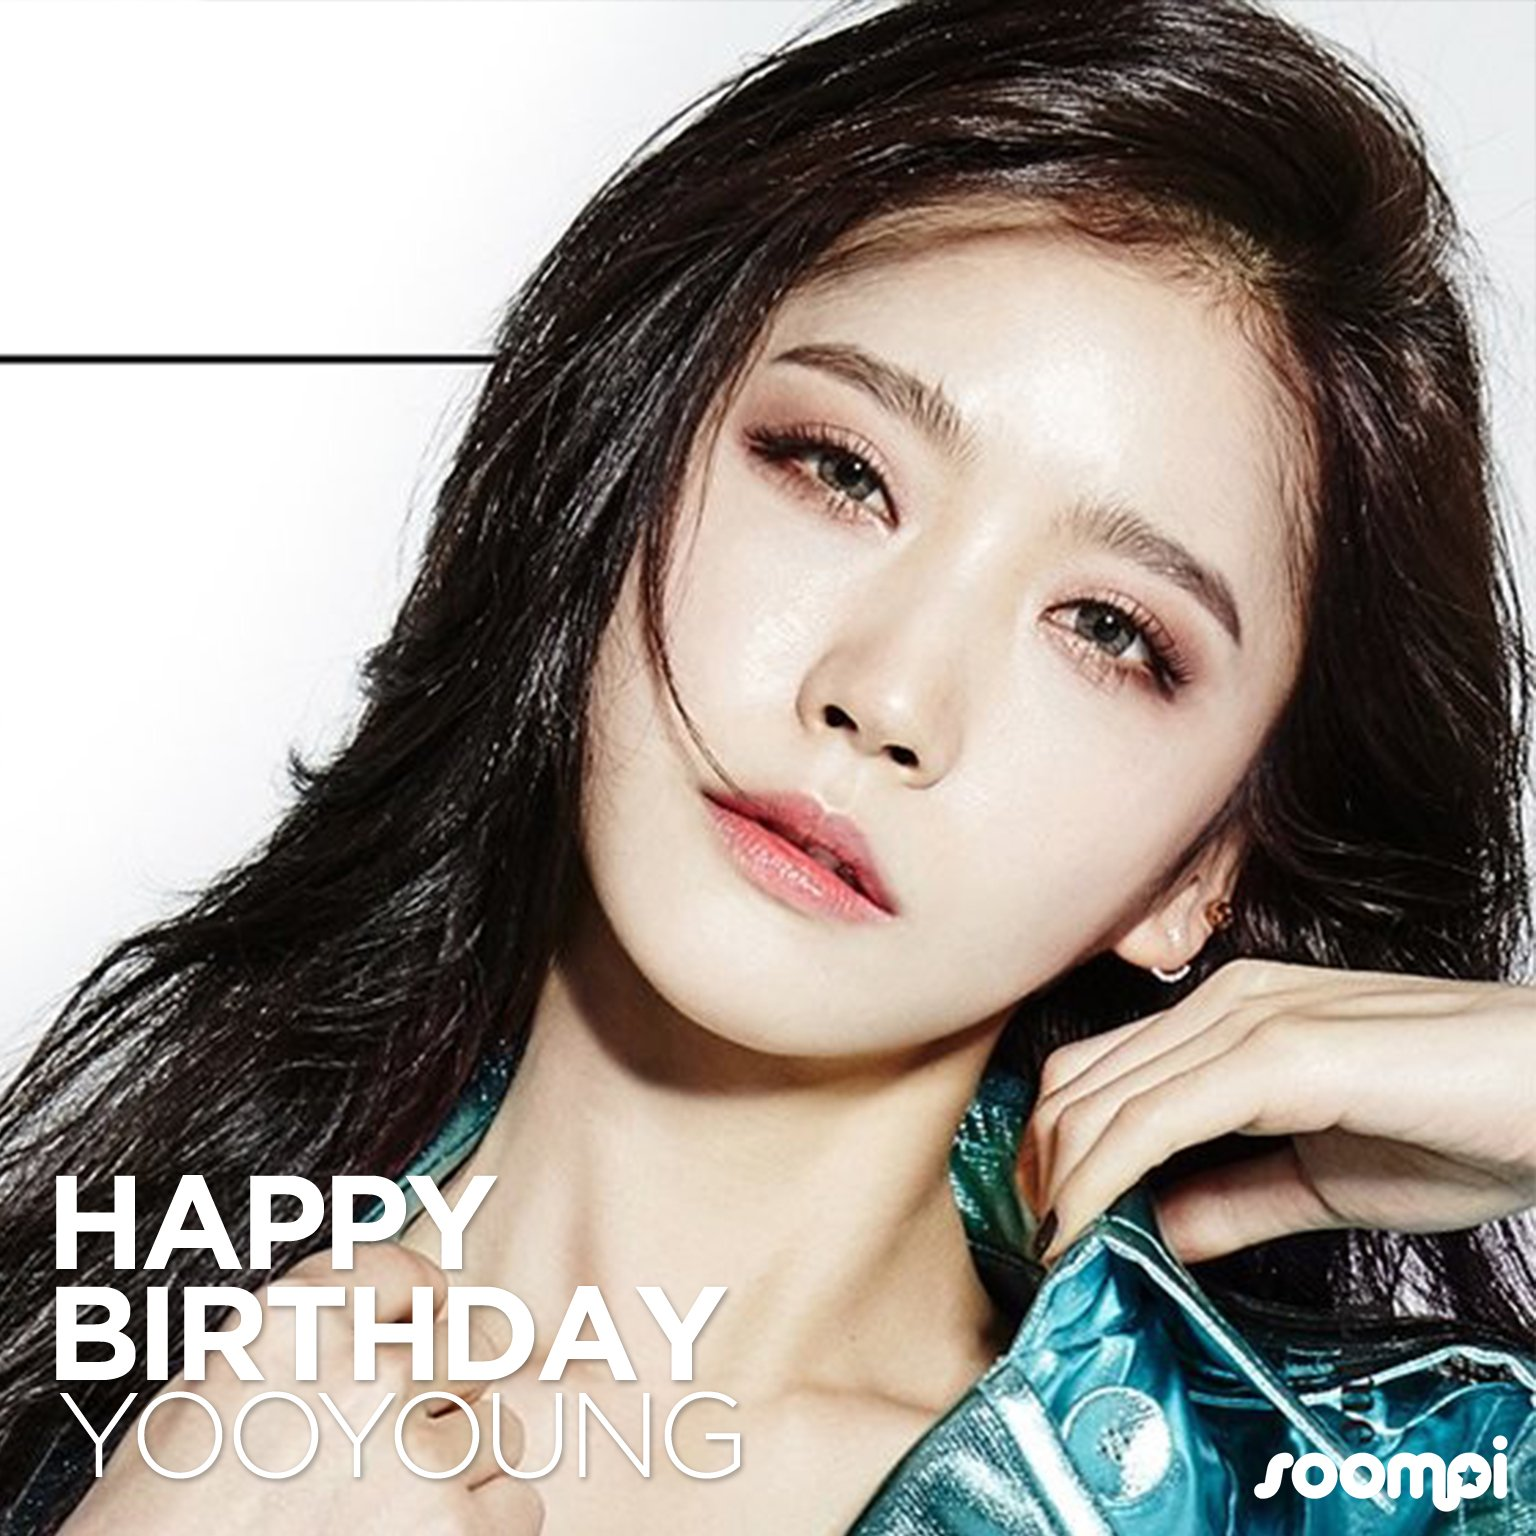 Happy Birthday to #Hellovenus's Yooyoung! #HappyYooyoungDay! �� Catch up with her: https://t.co/rdai2e4eR3 https://t.co/qXCnsyMnFT